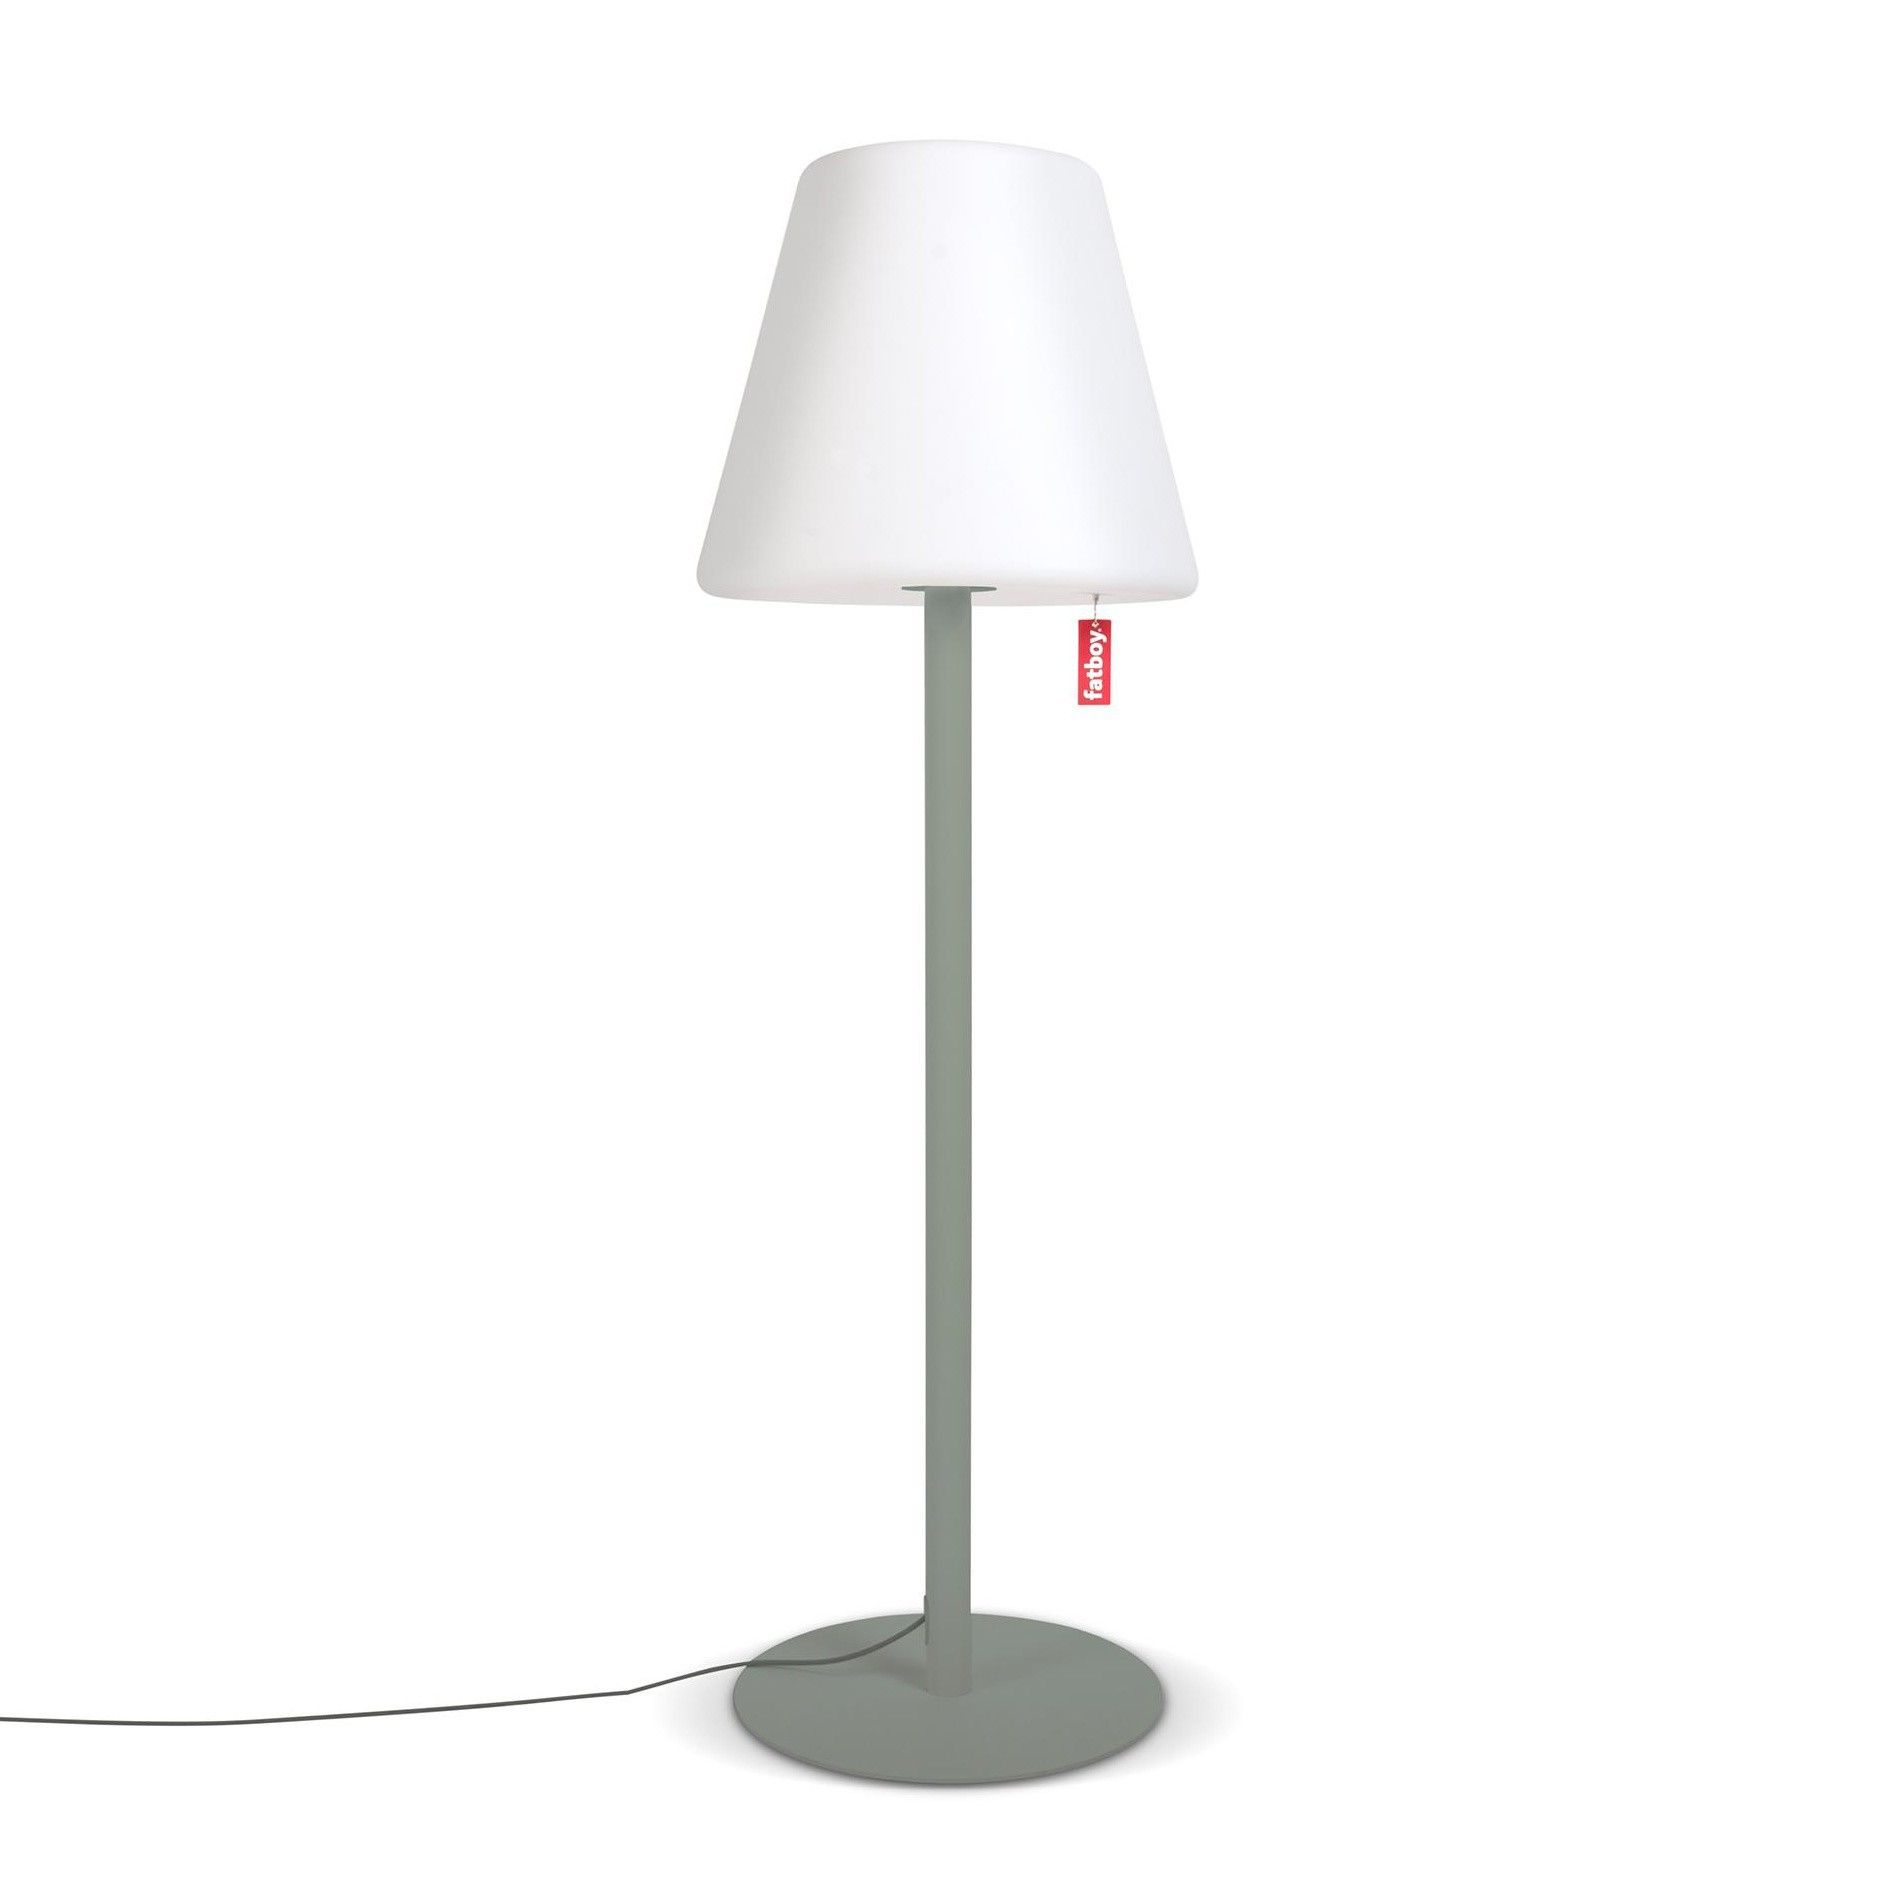 Fatboy Lamps The Slightly Different Lights Home Interior Design Ideas Lamp Home Interior Design Interior